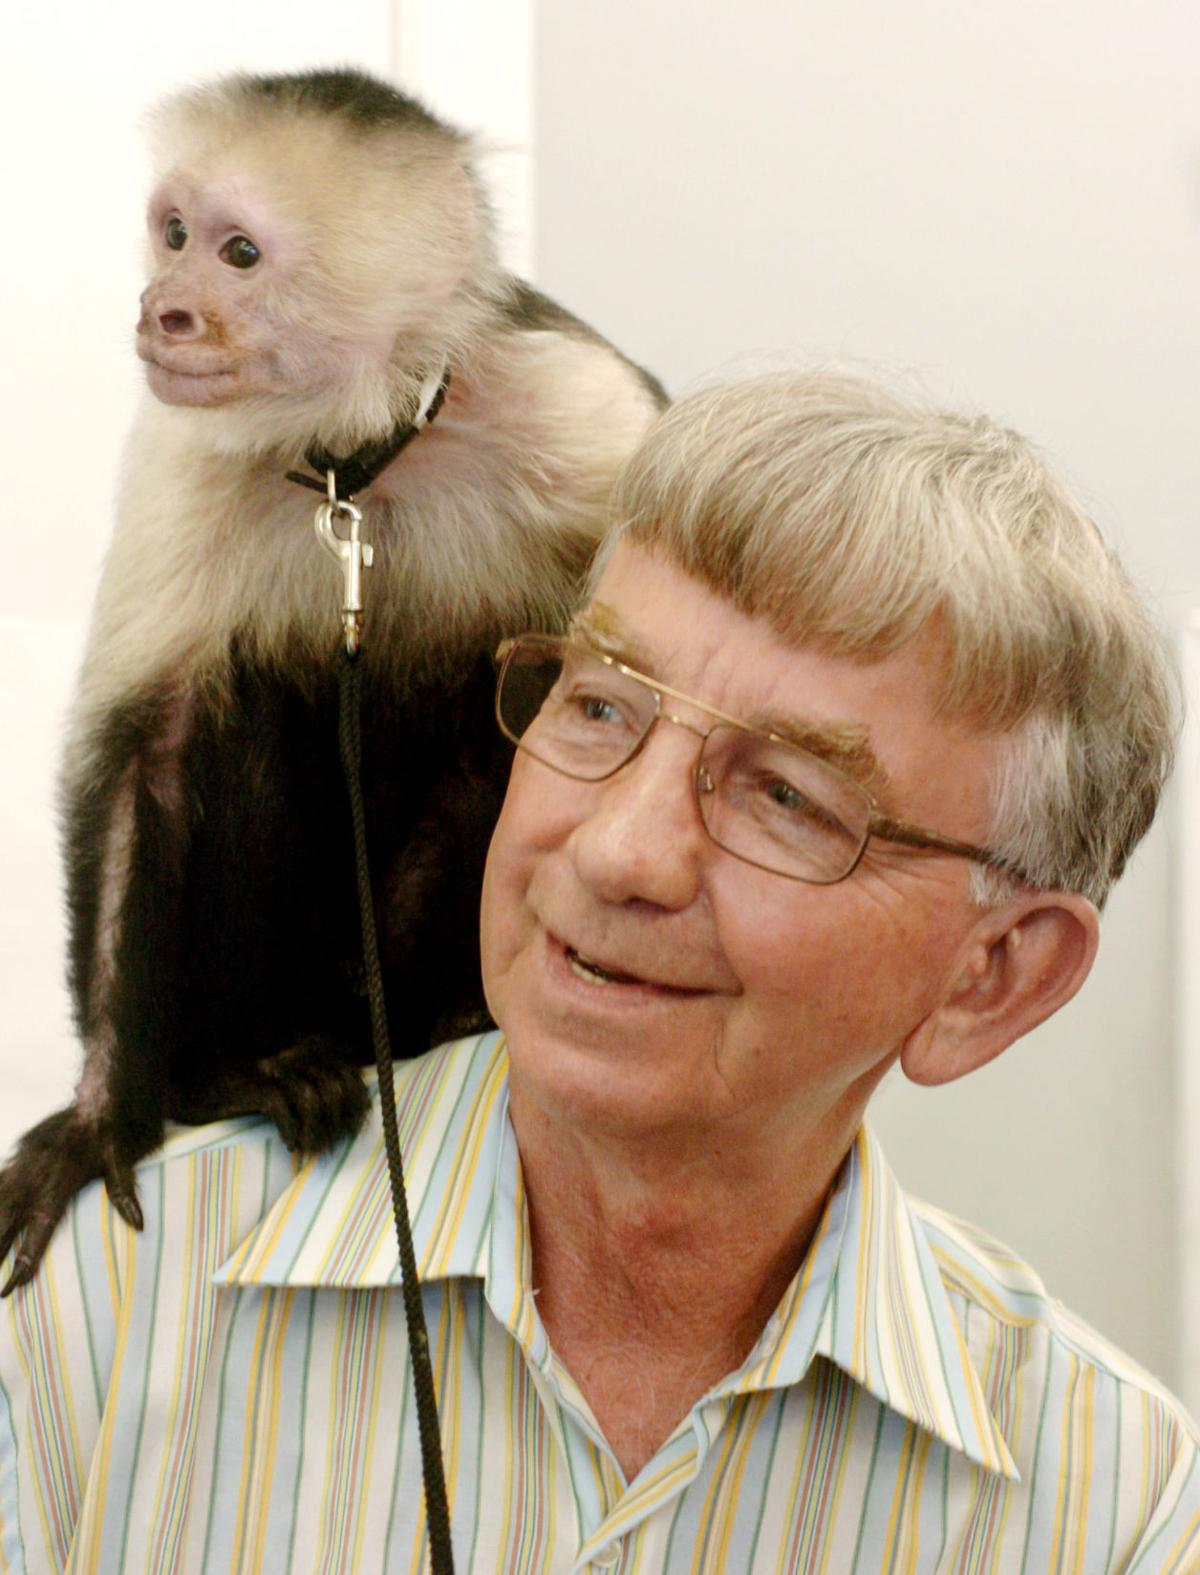 Charlie Harvey, owner of Roanoke pet store with exotic